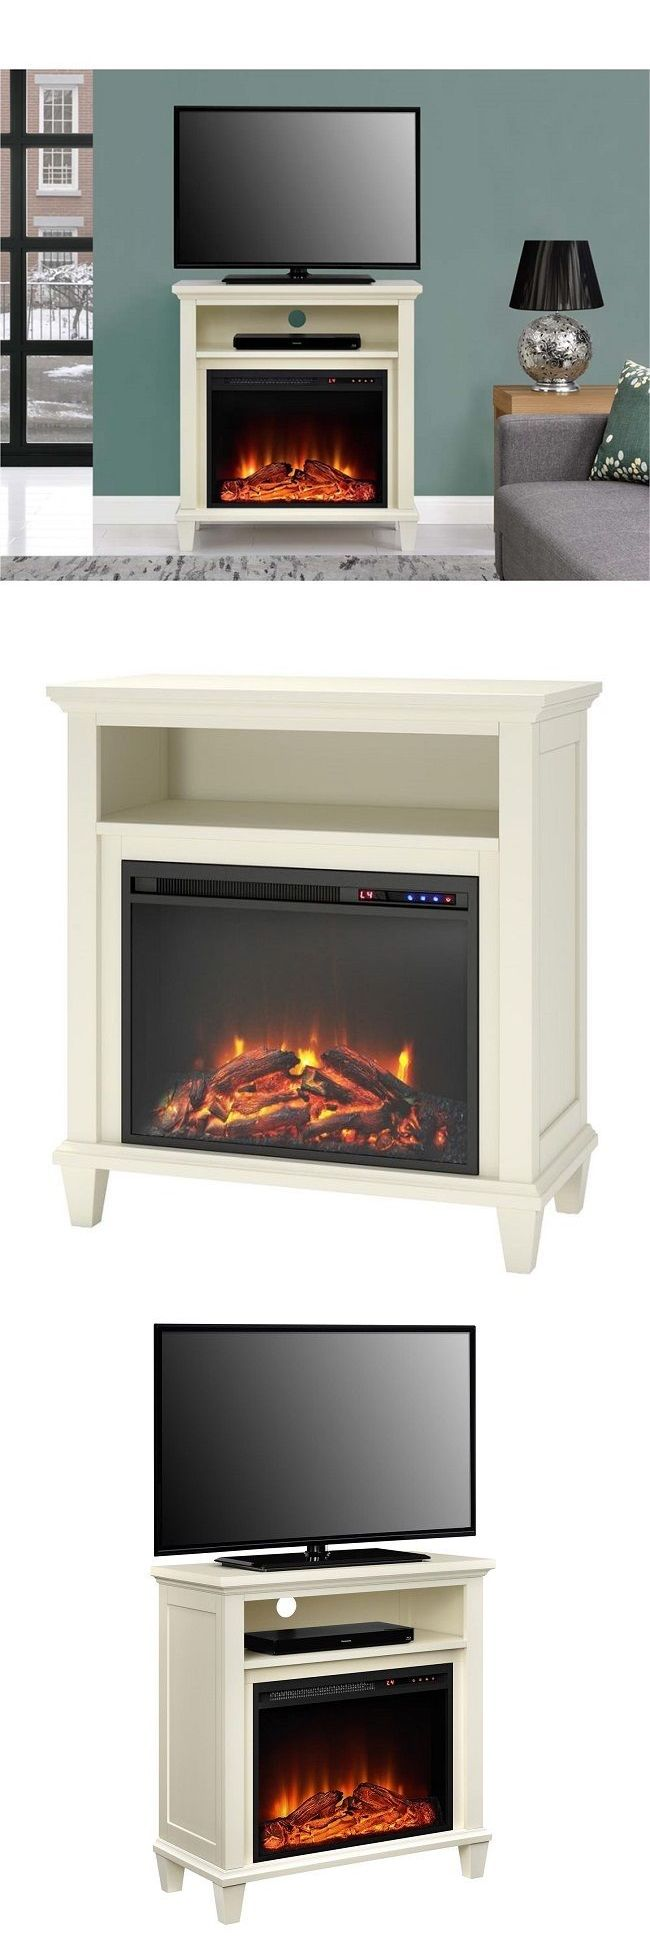 Home shop live tv stands chunky stretch tv stand - Entertainment Units Tv Stands 20488 Fireplace Tv Stand Electric Heater Media Console Flat Screen Small